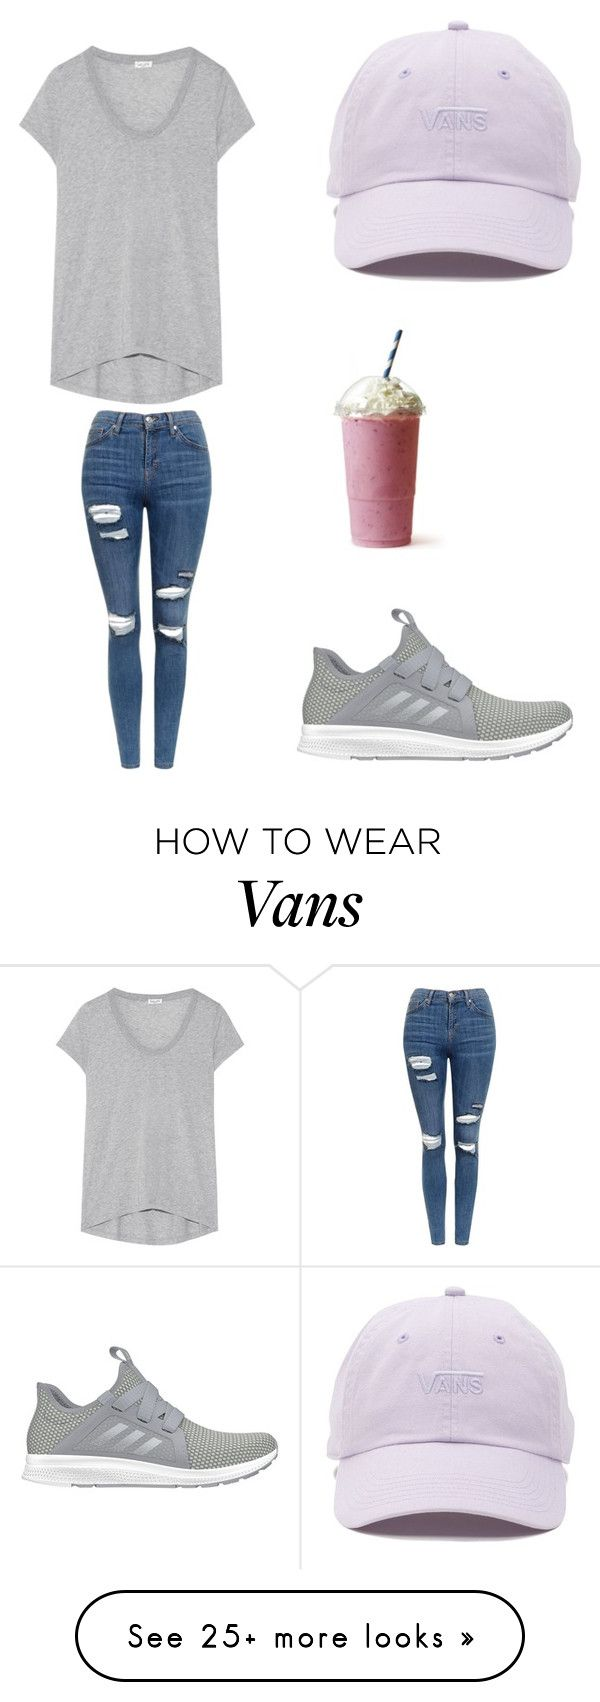 """""""Beautiful weather outside"""" by sarahfohlen on Polyvore featuring Vans, Splendid, Topshop, adidas, Spring and 2k17"""